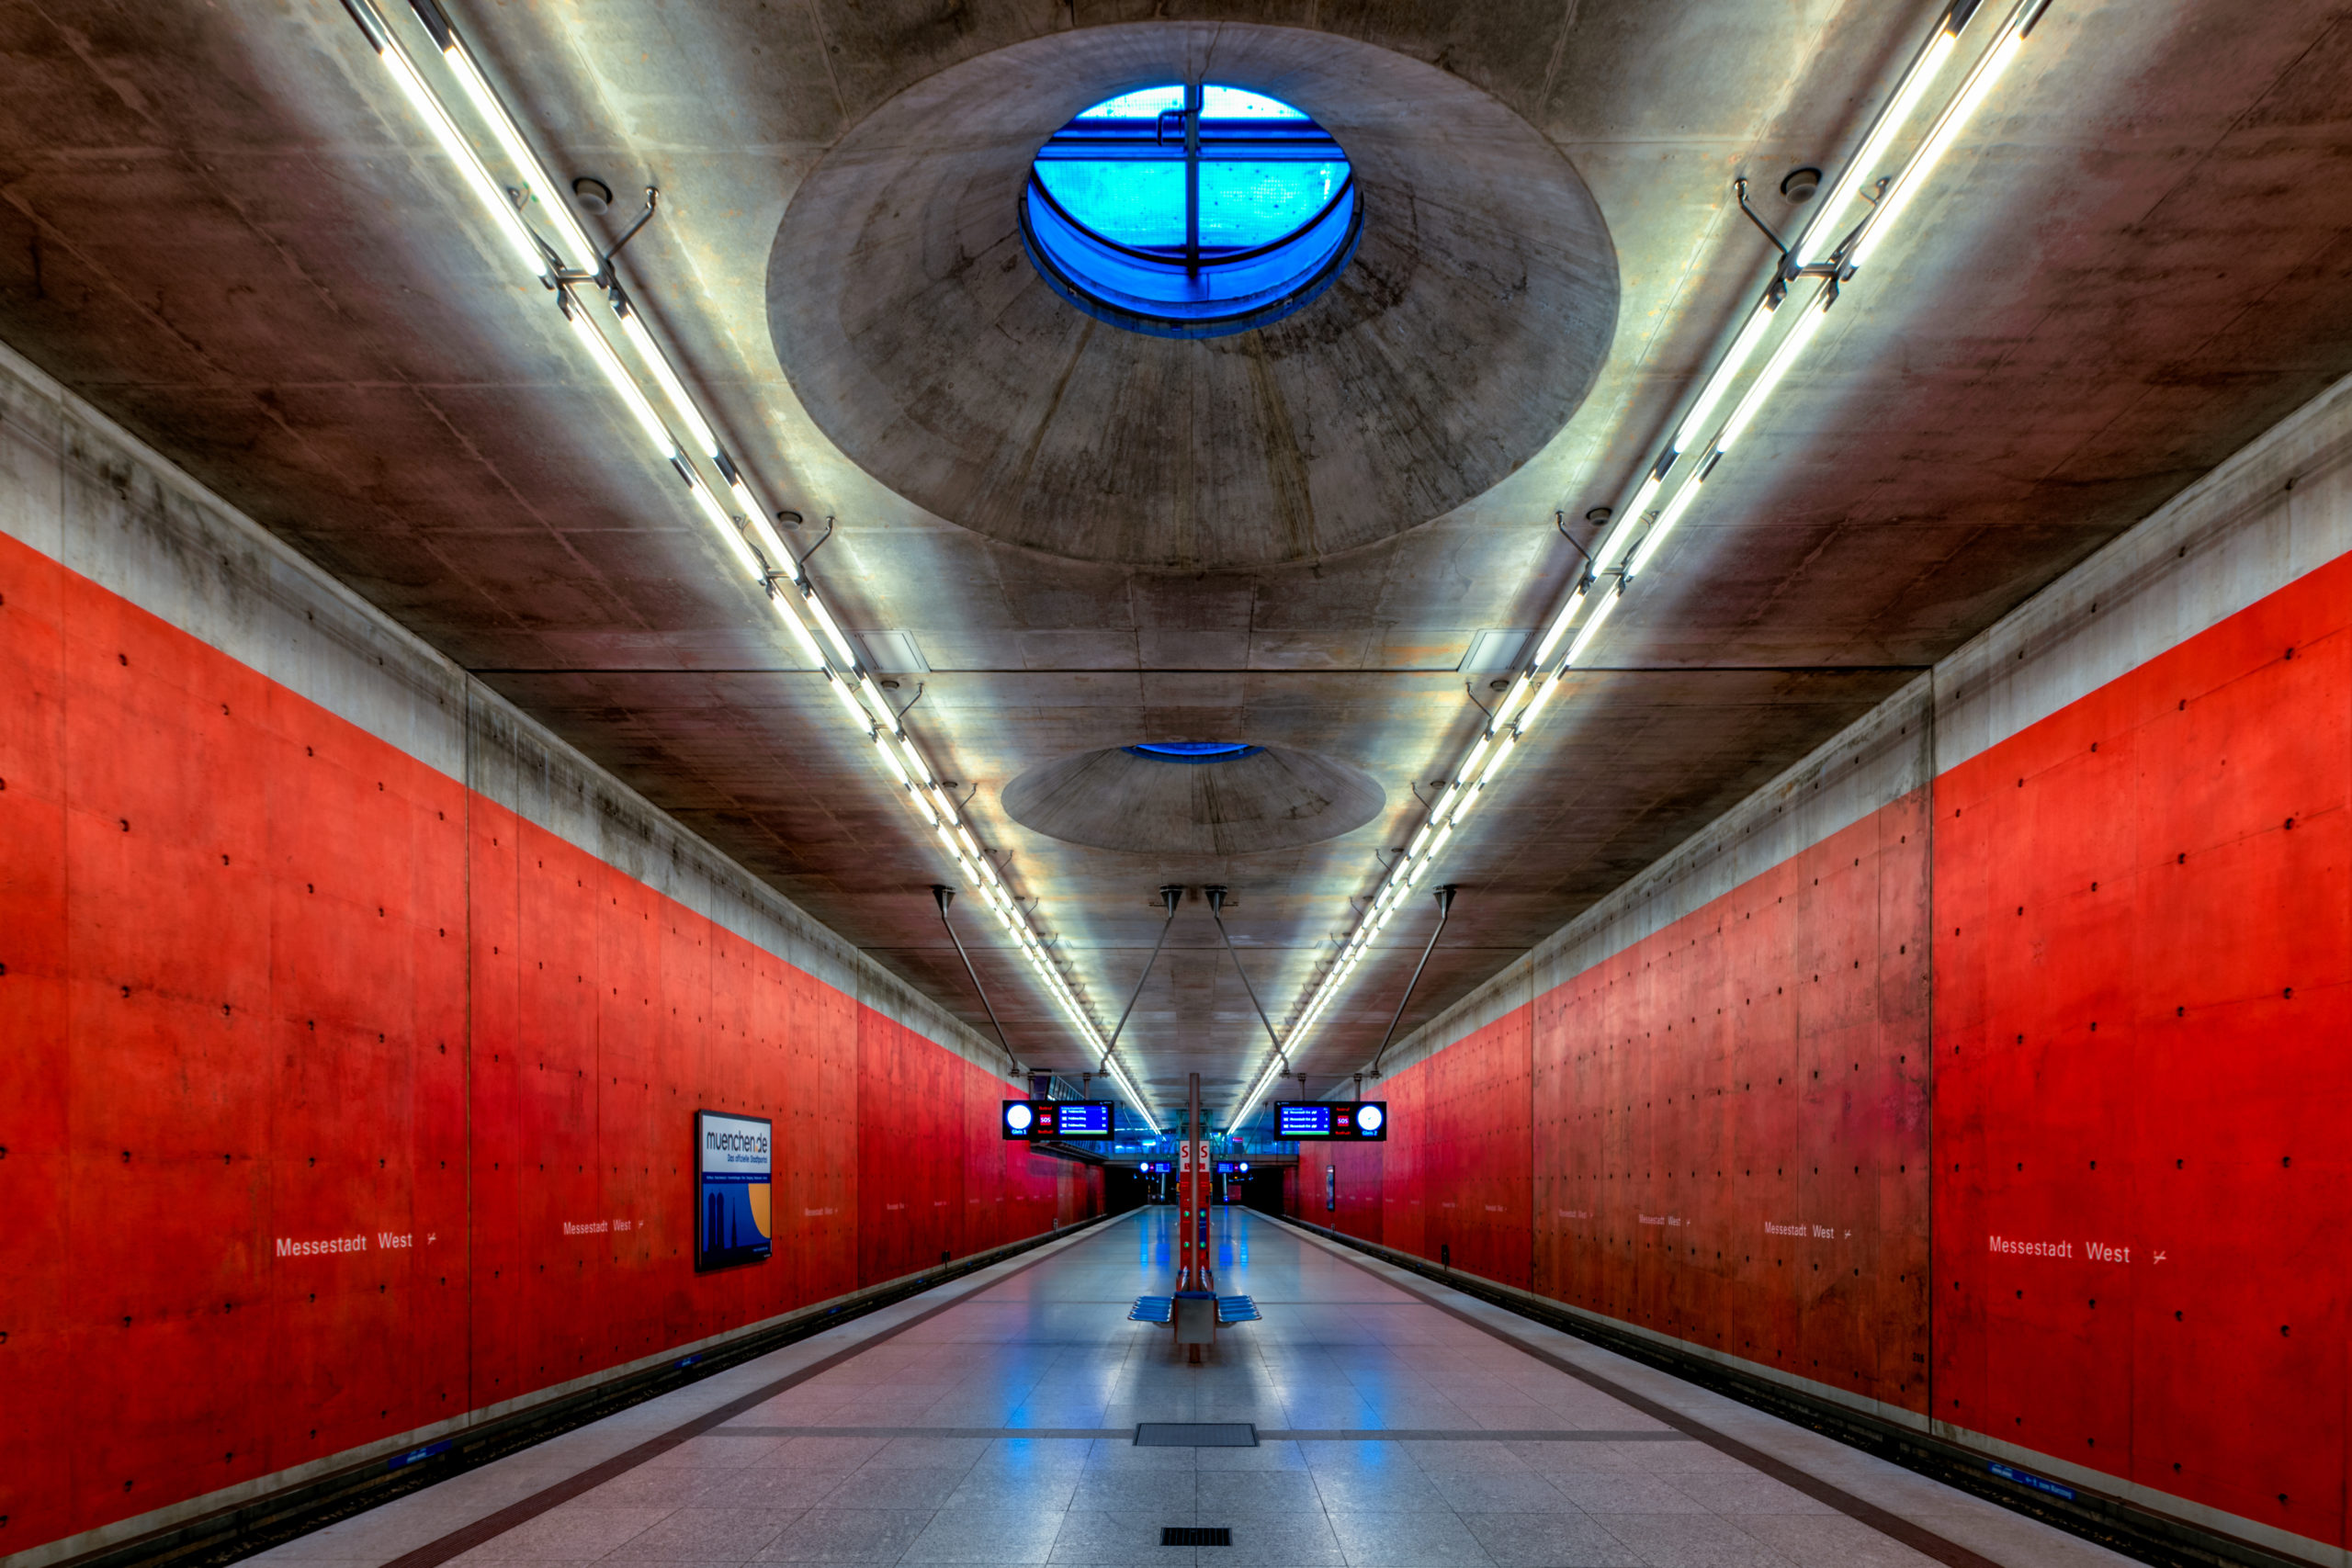 Underground Station Messestadt West